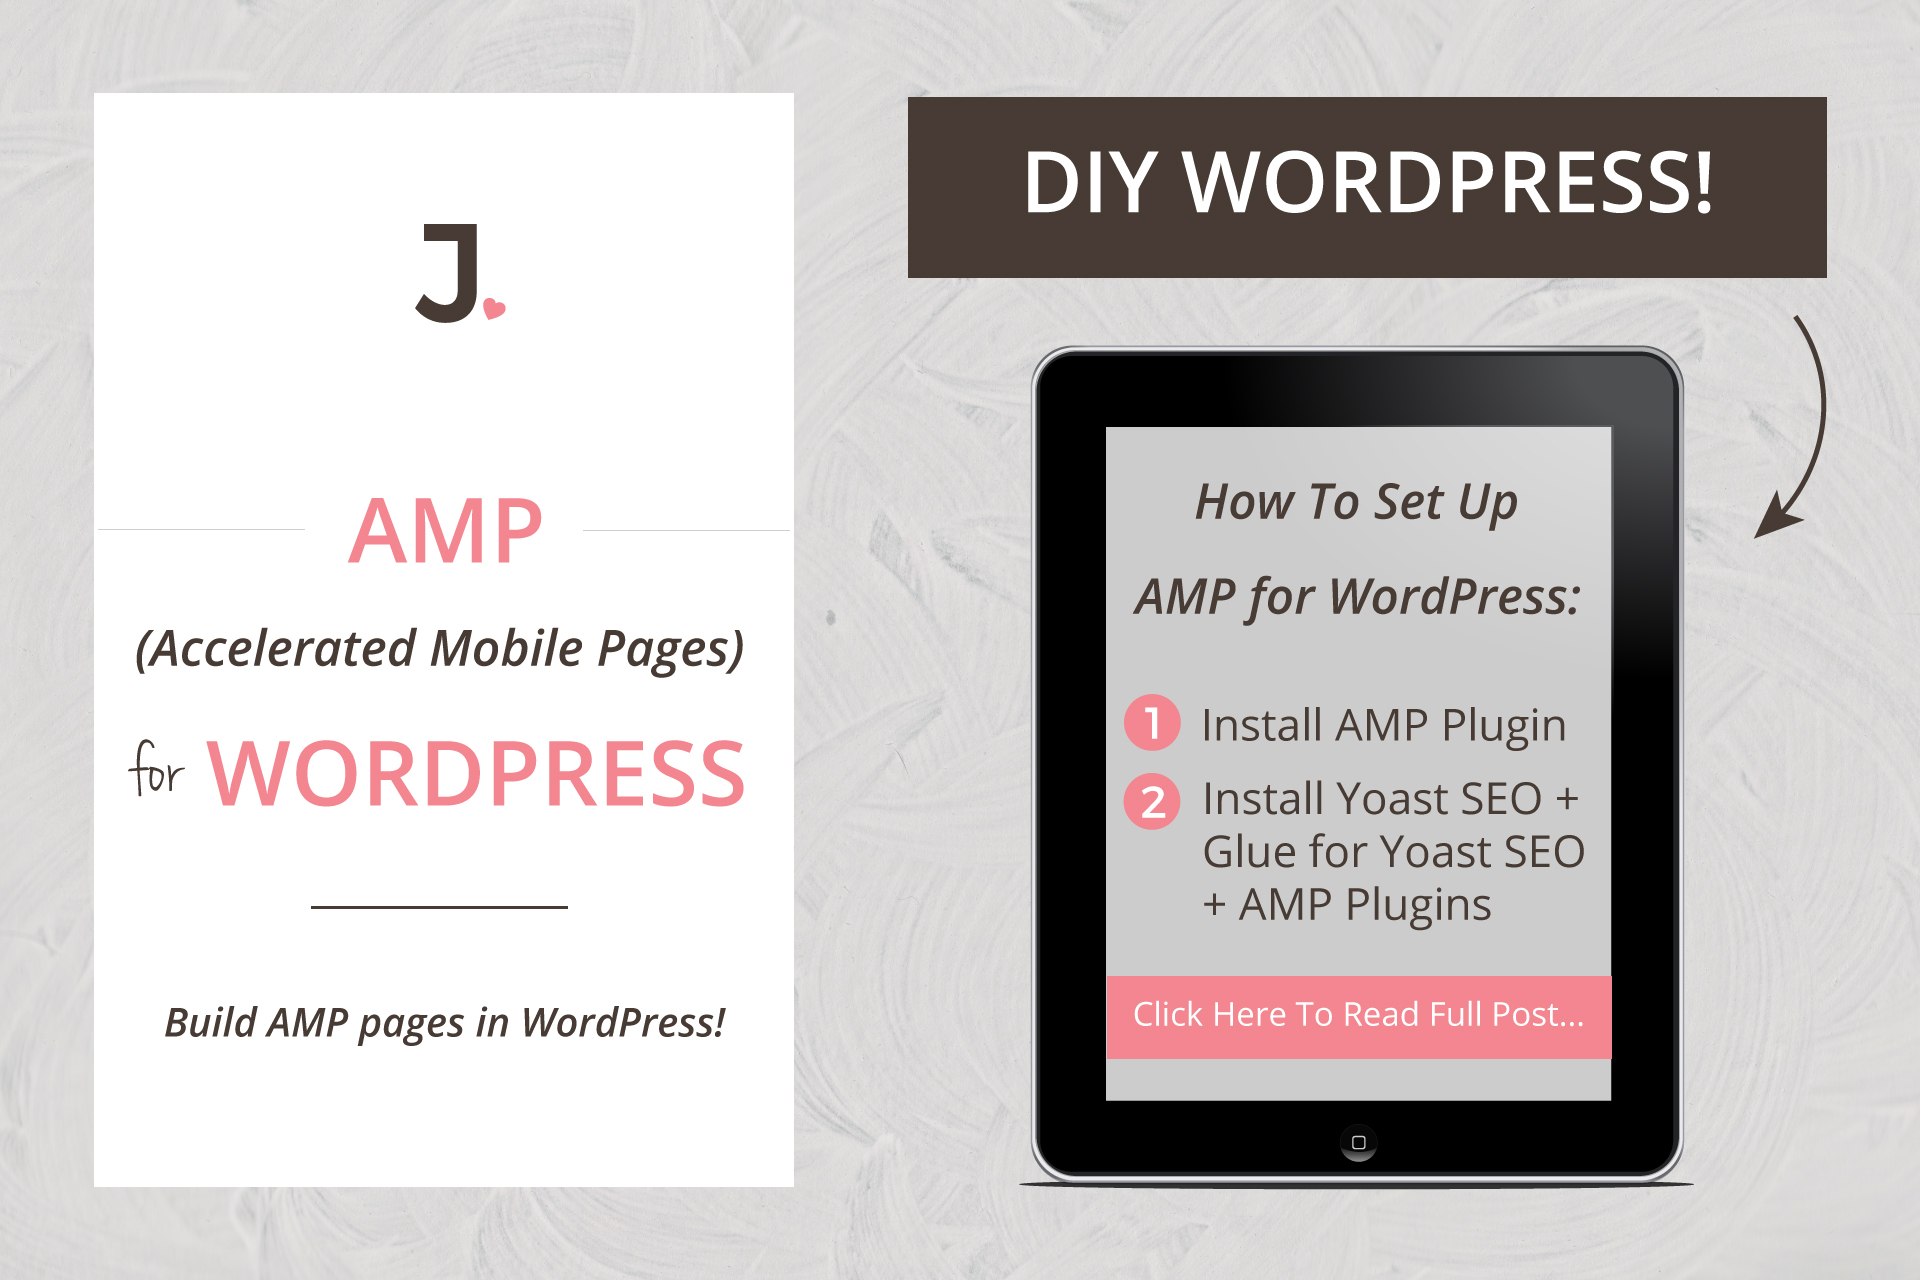 How To Set UP AMP For WordPress | Accelerated Mobile Pages: I show you how to set up AMP pages on your WordPress site and the reason why I did so at Jennifer-Franklin.com.